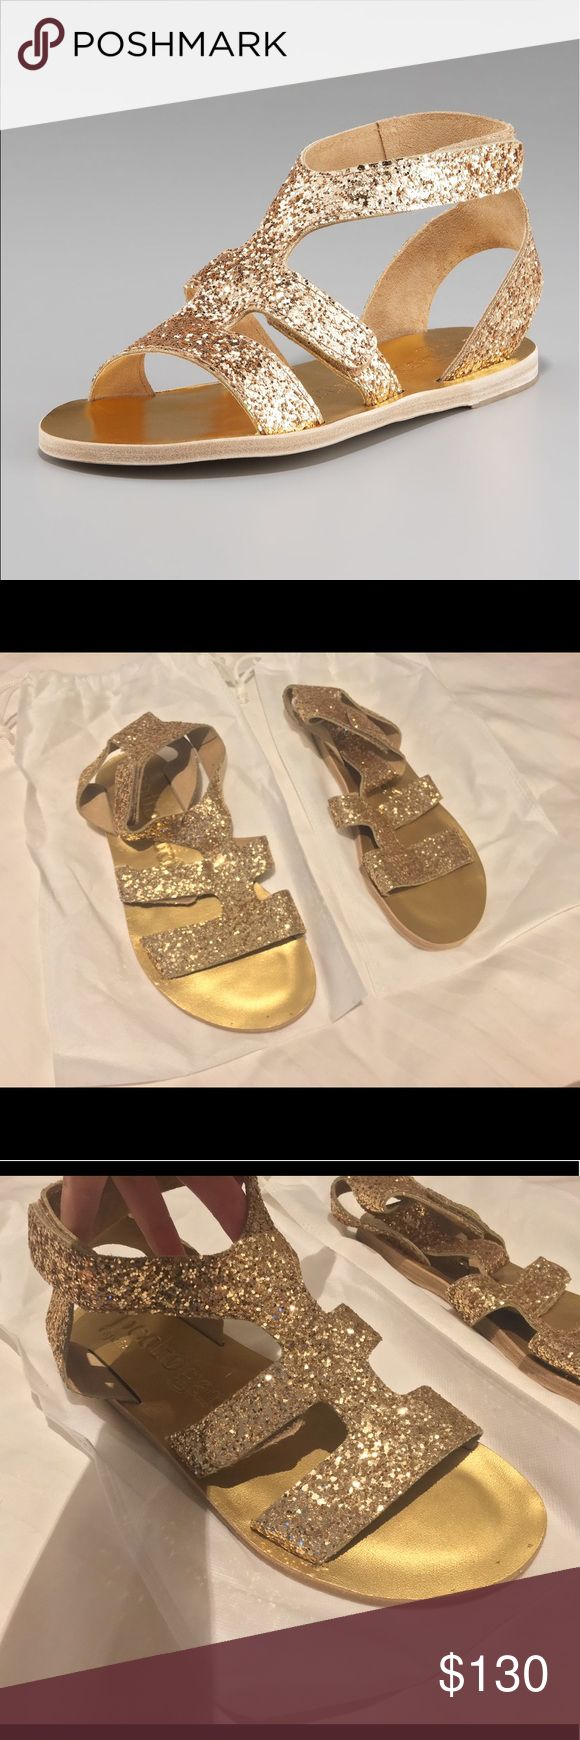 Pedro Garcia Zanna Gold Glitter Gladiator Sandals 100% authentic Pedro Garcia glitter gladiator sandals in a size 39. Have only been worn once, excellent condition. Will fit a US 8.5 or 9. Does not include box. Pedro Garcia Shoes Sandals